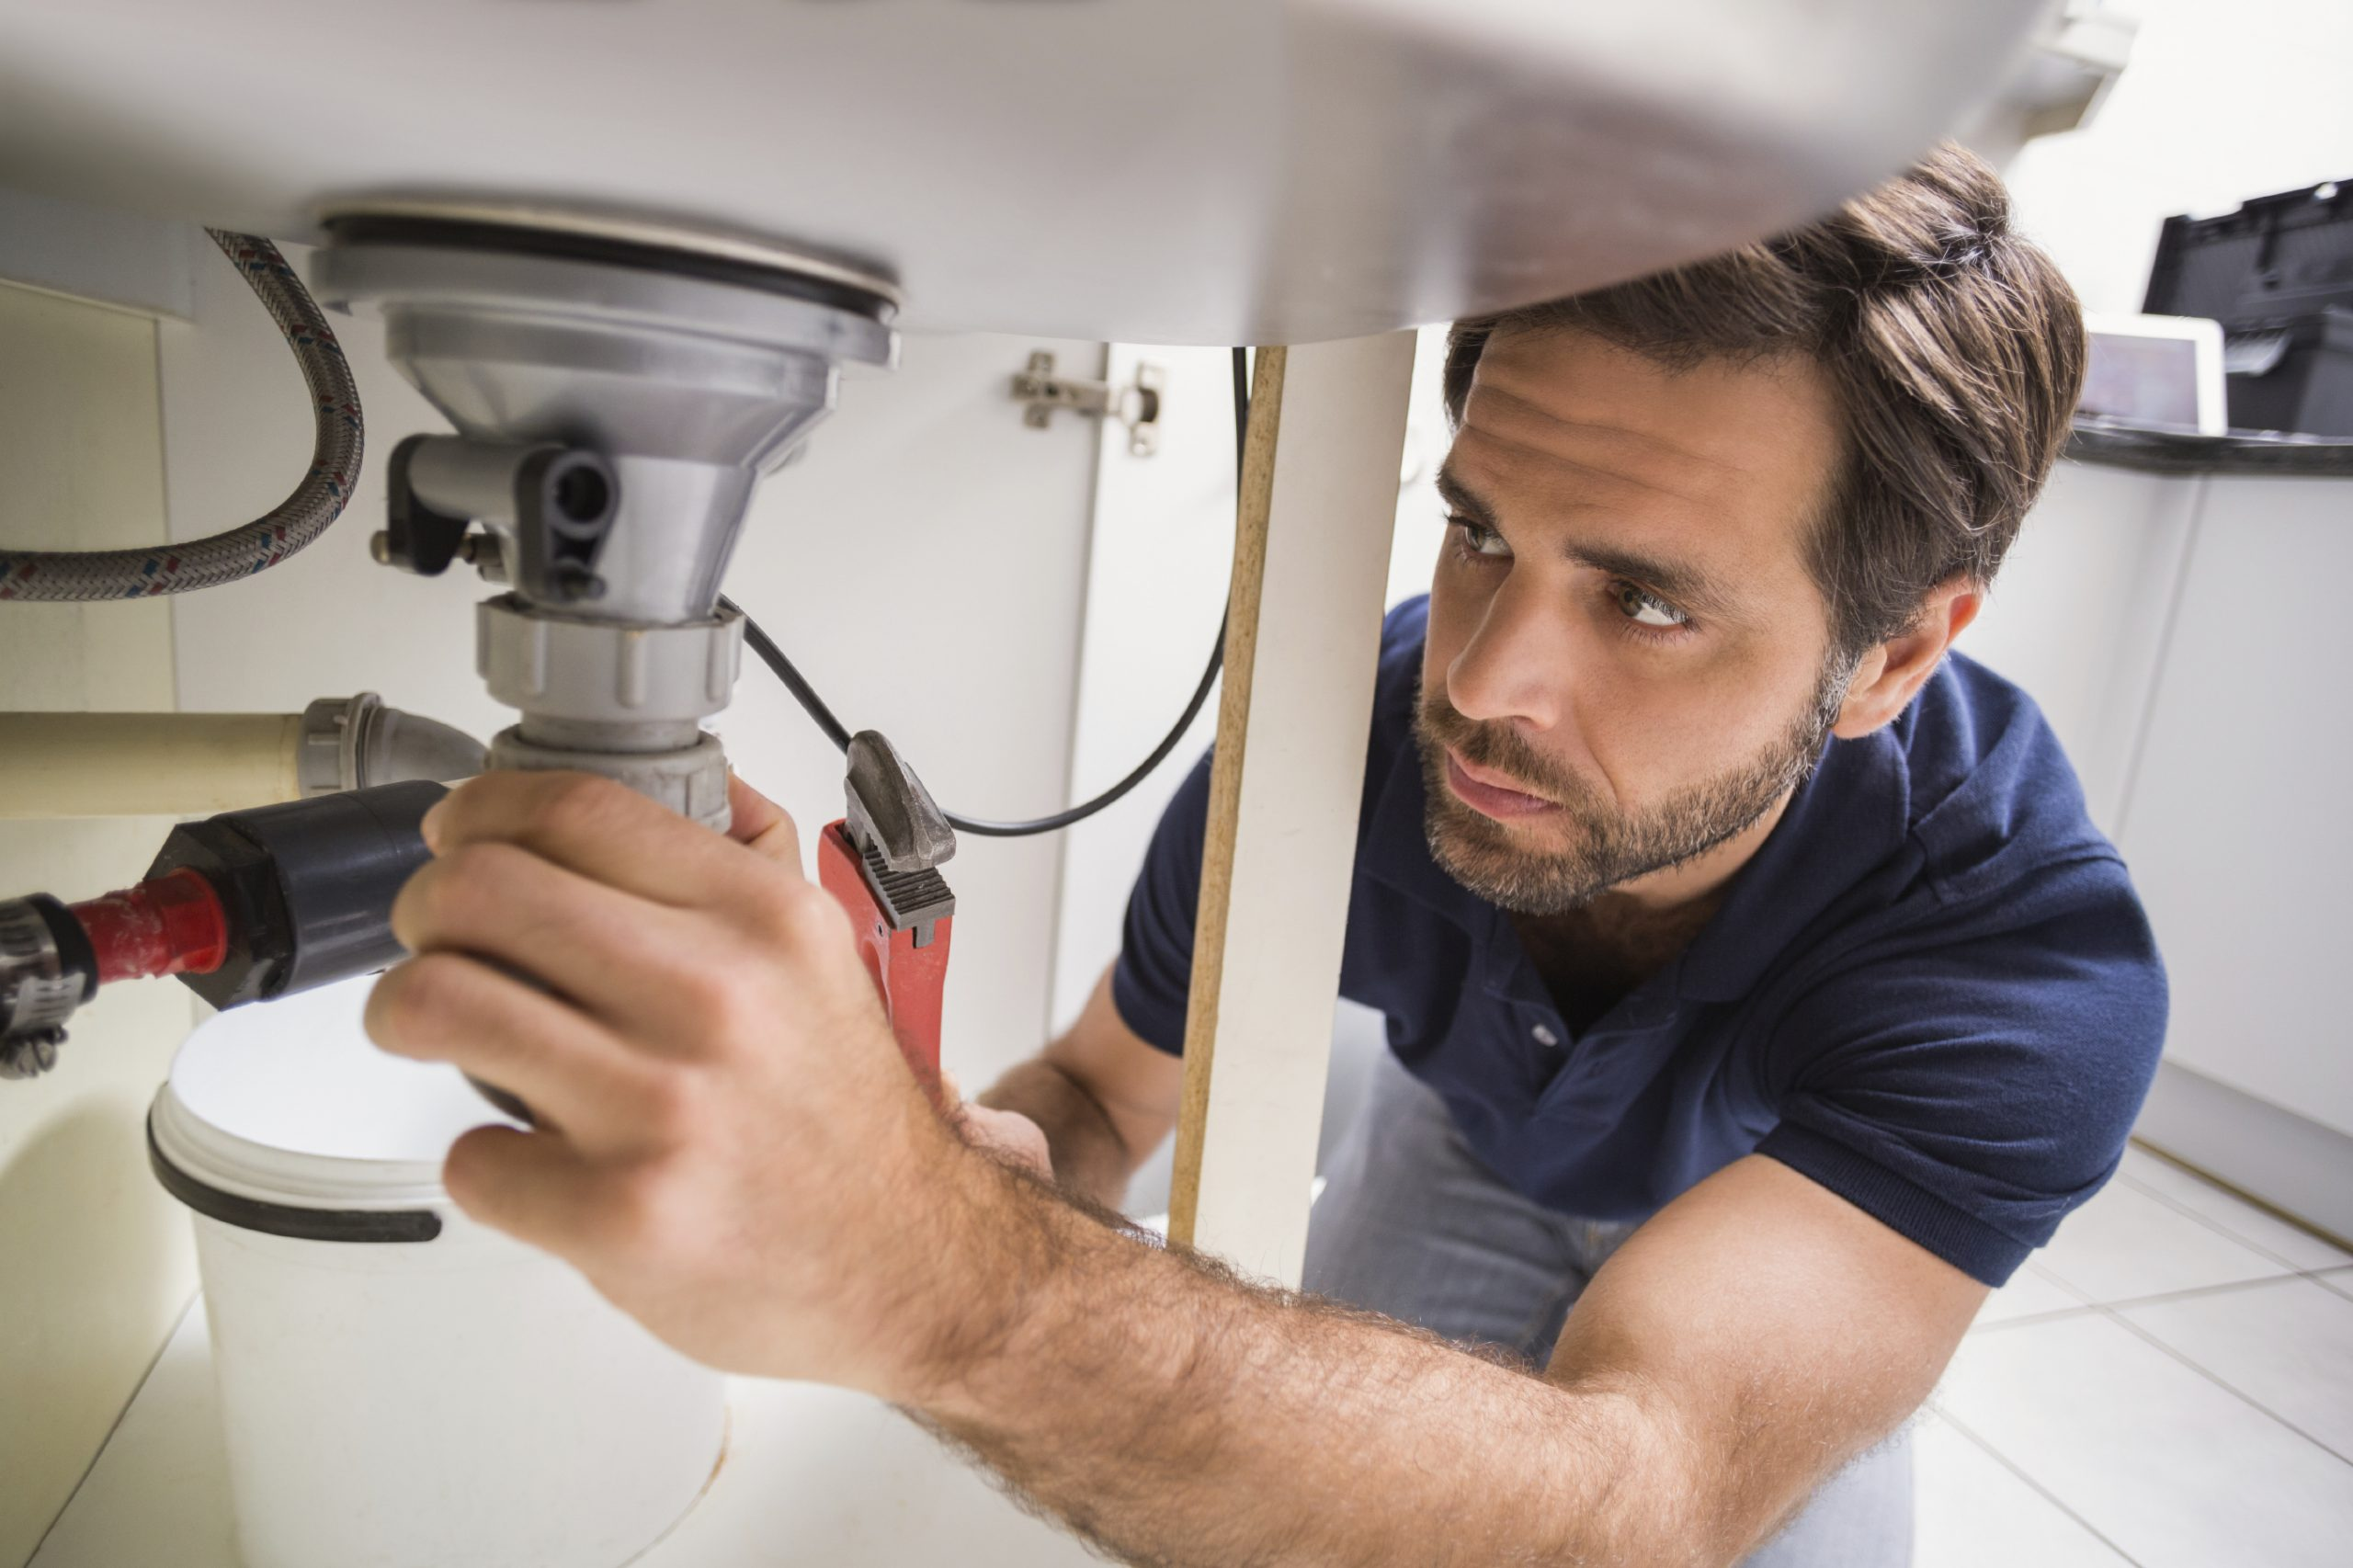 7 Things You Should Know About Your Plumbing